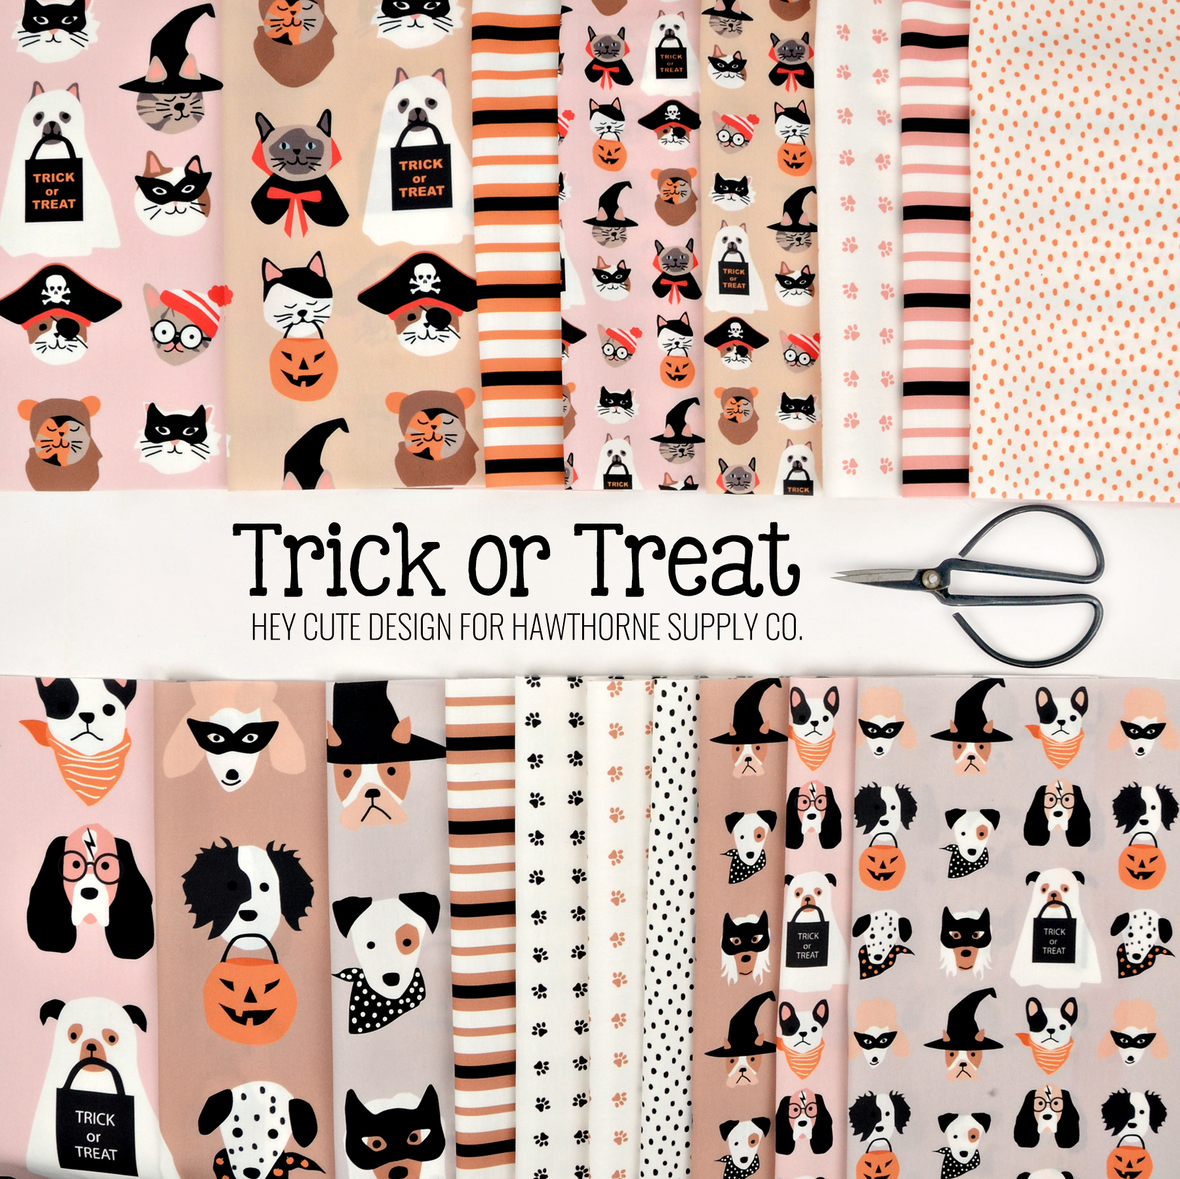 Trick or Treat Hey Cute Design for Hawthorne Supply Co